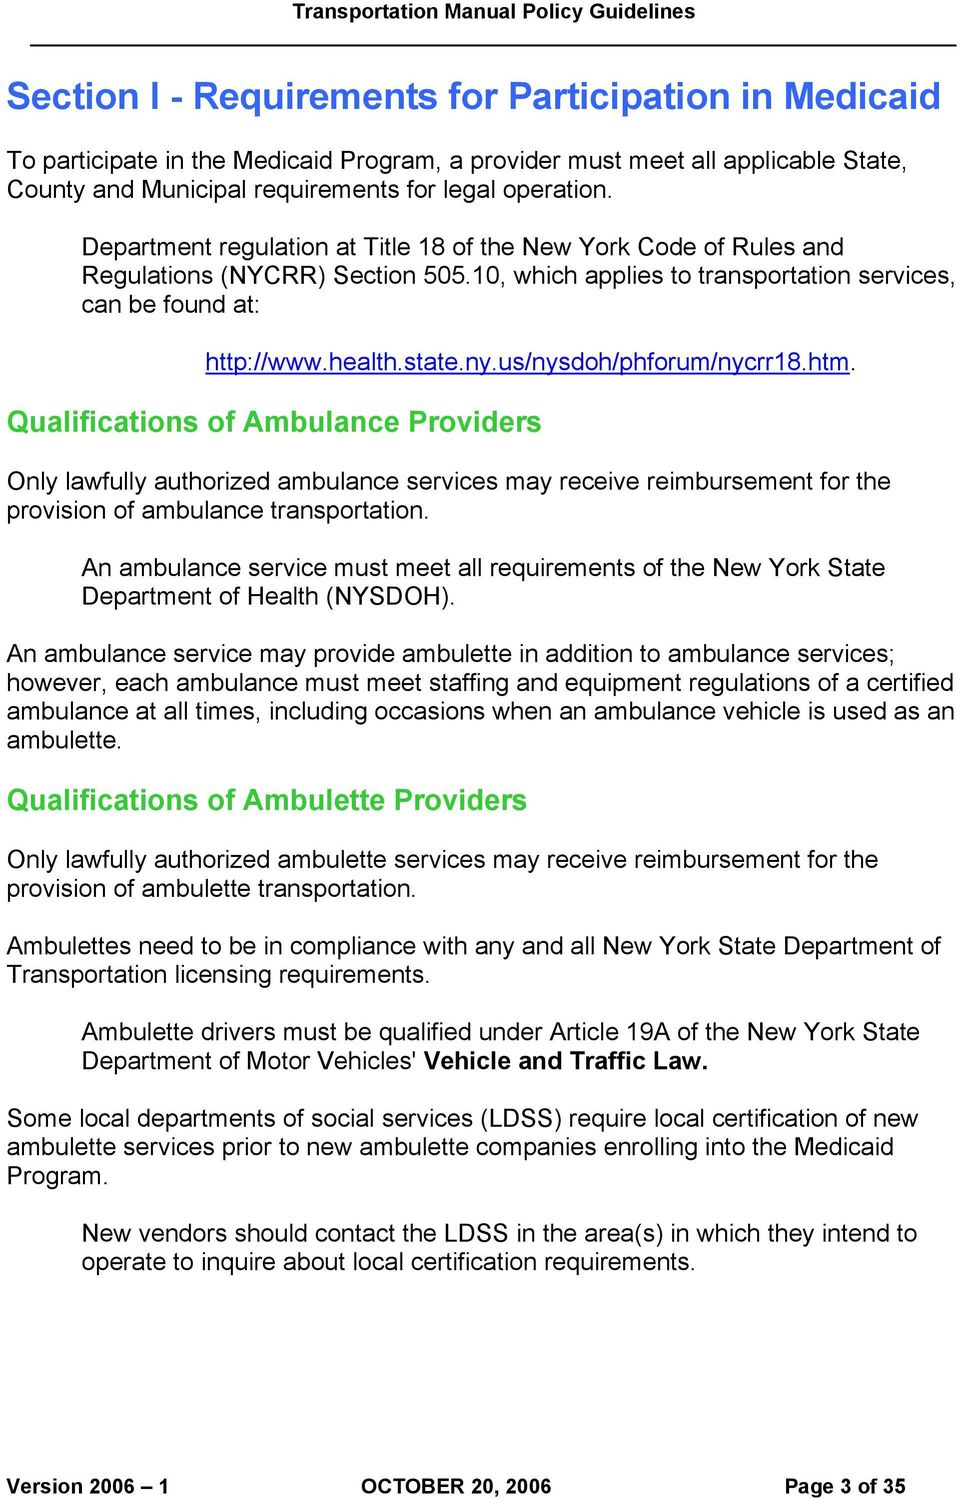 us/nysdoh/phforum/nycrr18.htm. Qualifications of Ambulance Providers Only lawfully authorized ambulance services may receive reimbursement for the provision of ambulance transportation.